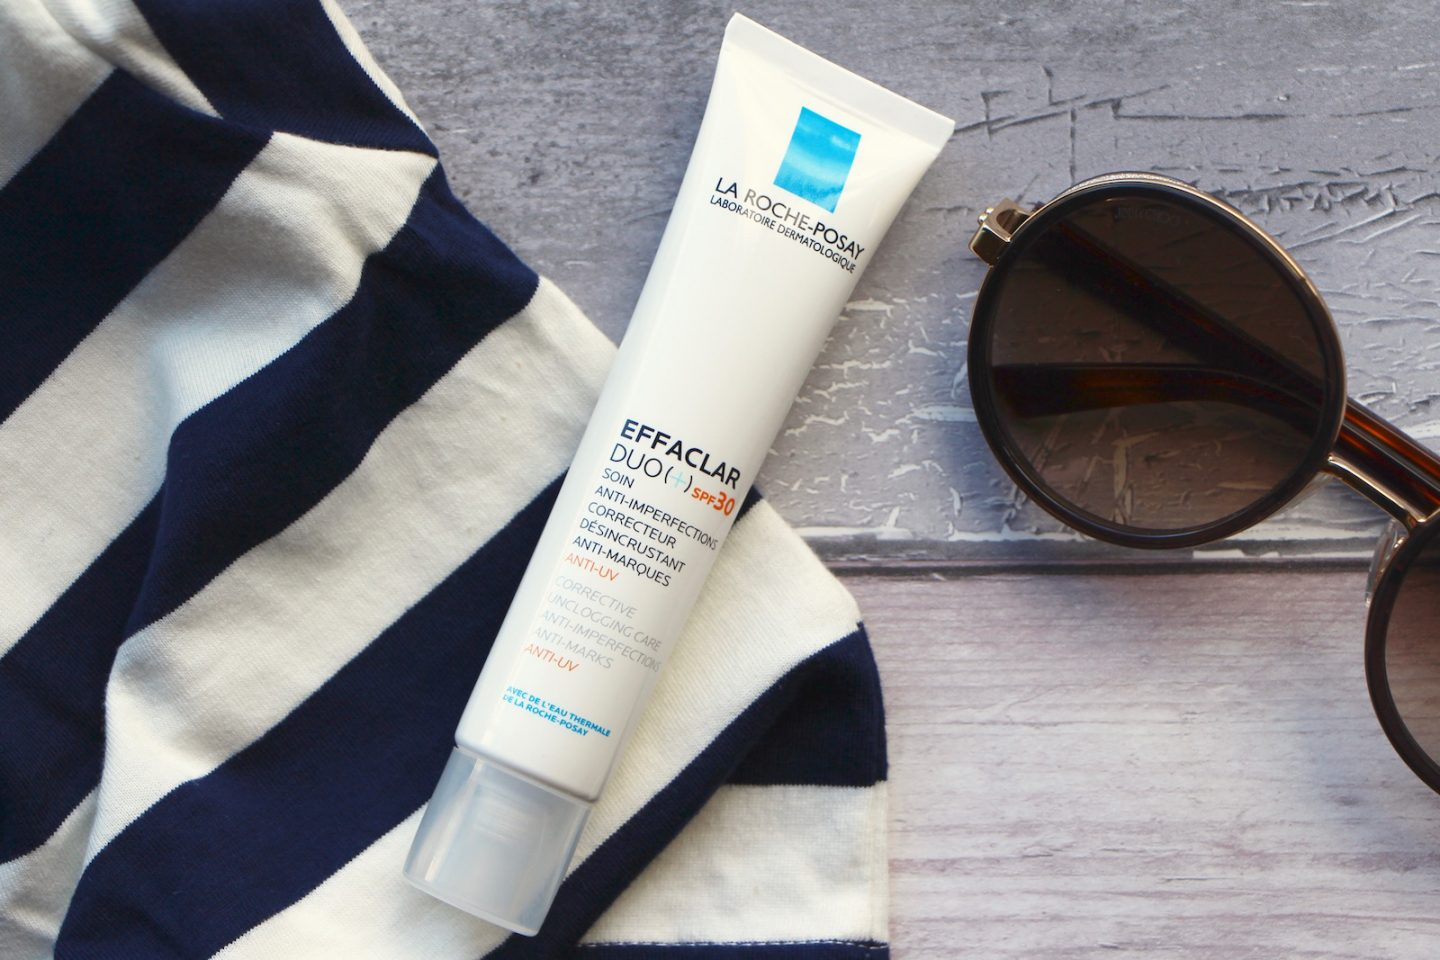 Effaclar Duo: The Spot-Treating SPF